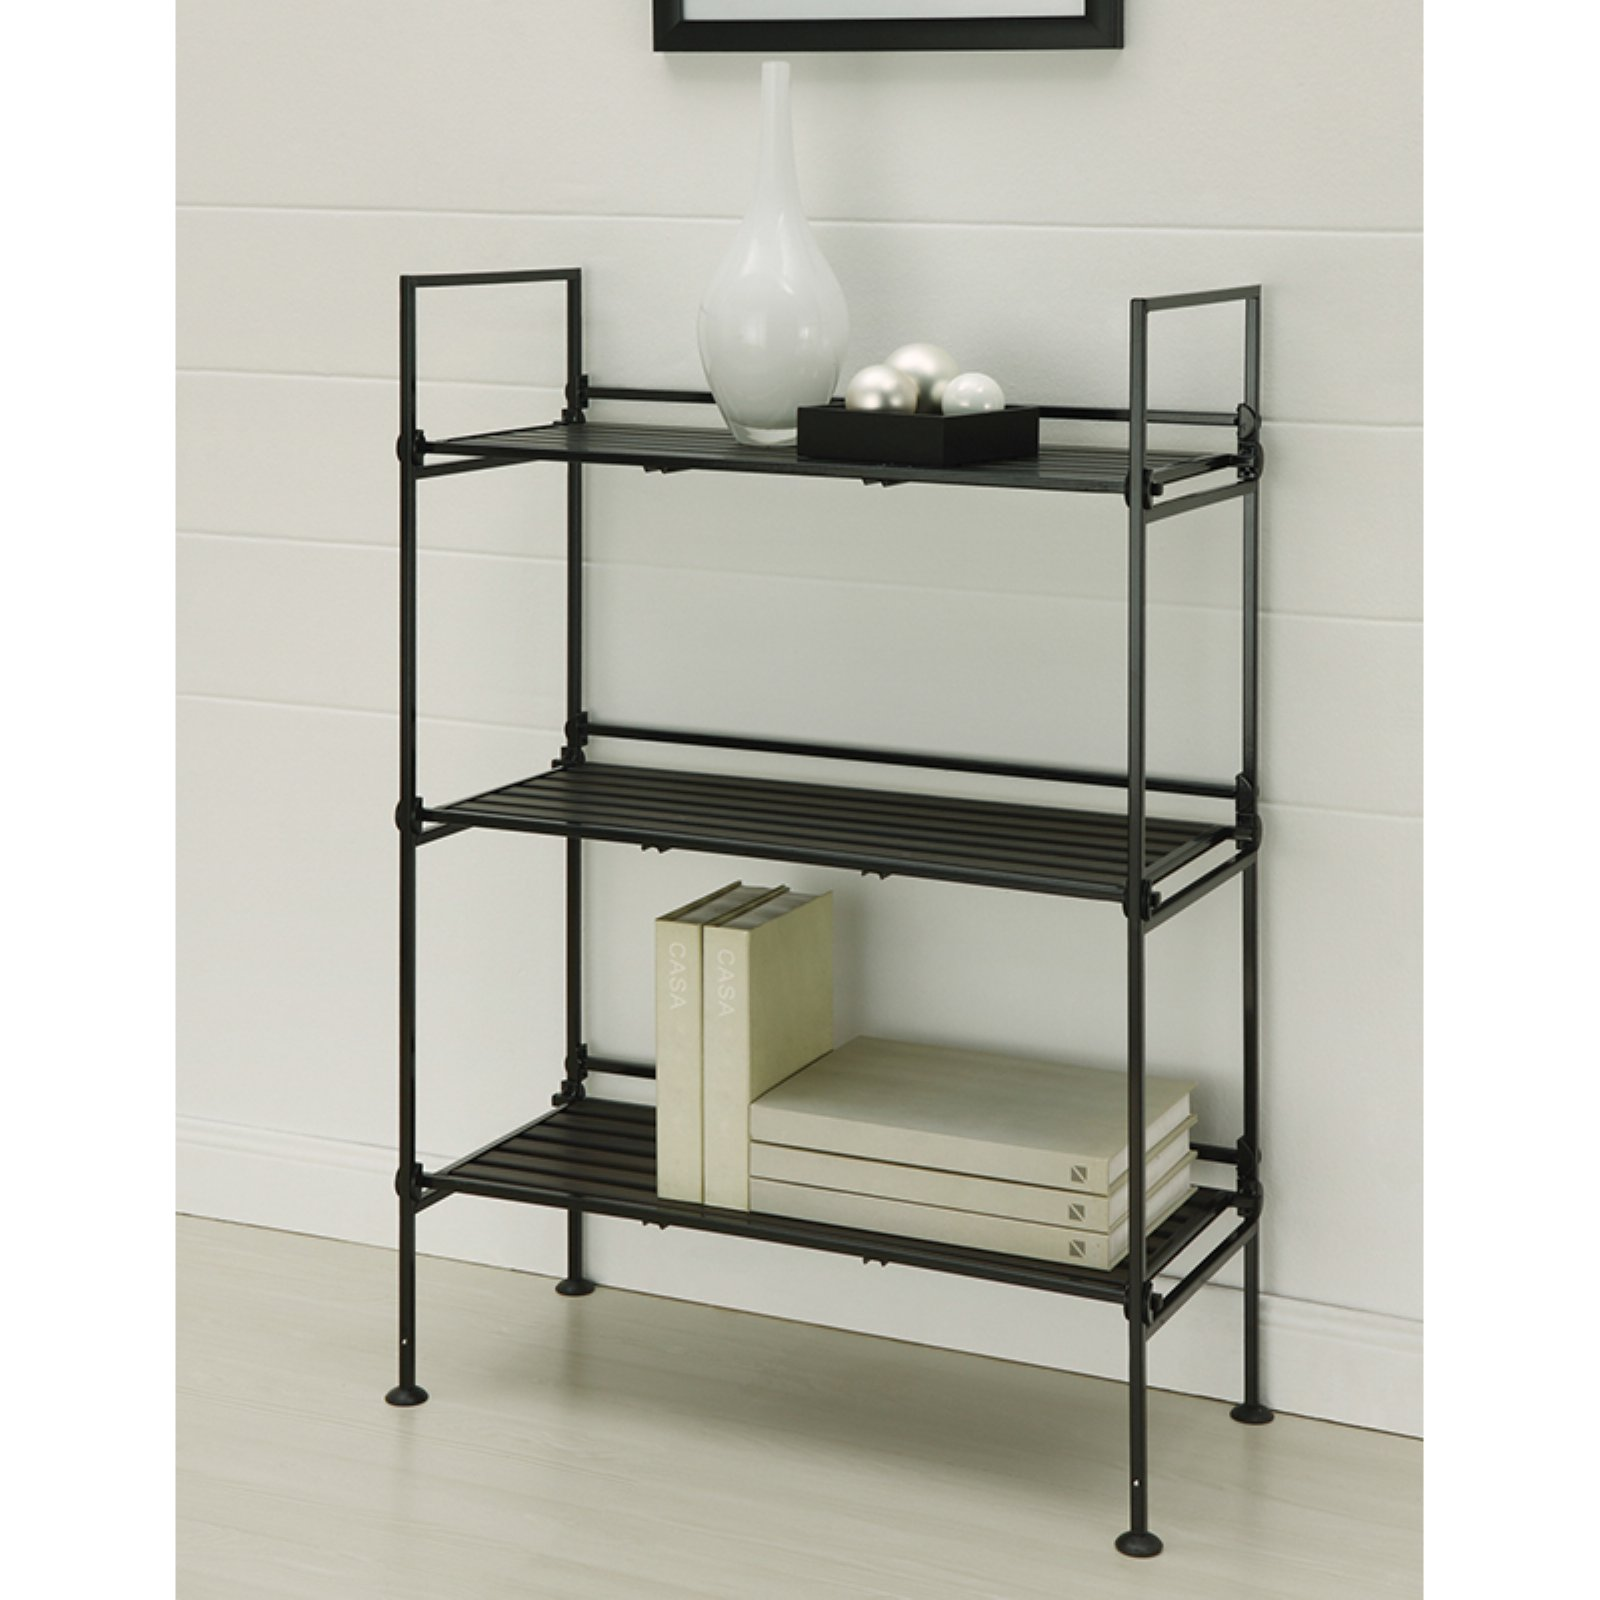 Organize It All 97203W-1 3 Tier Shelf